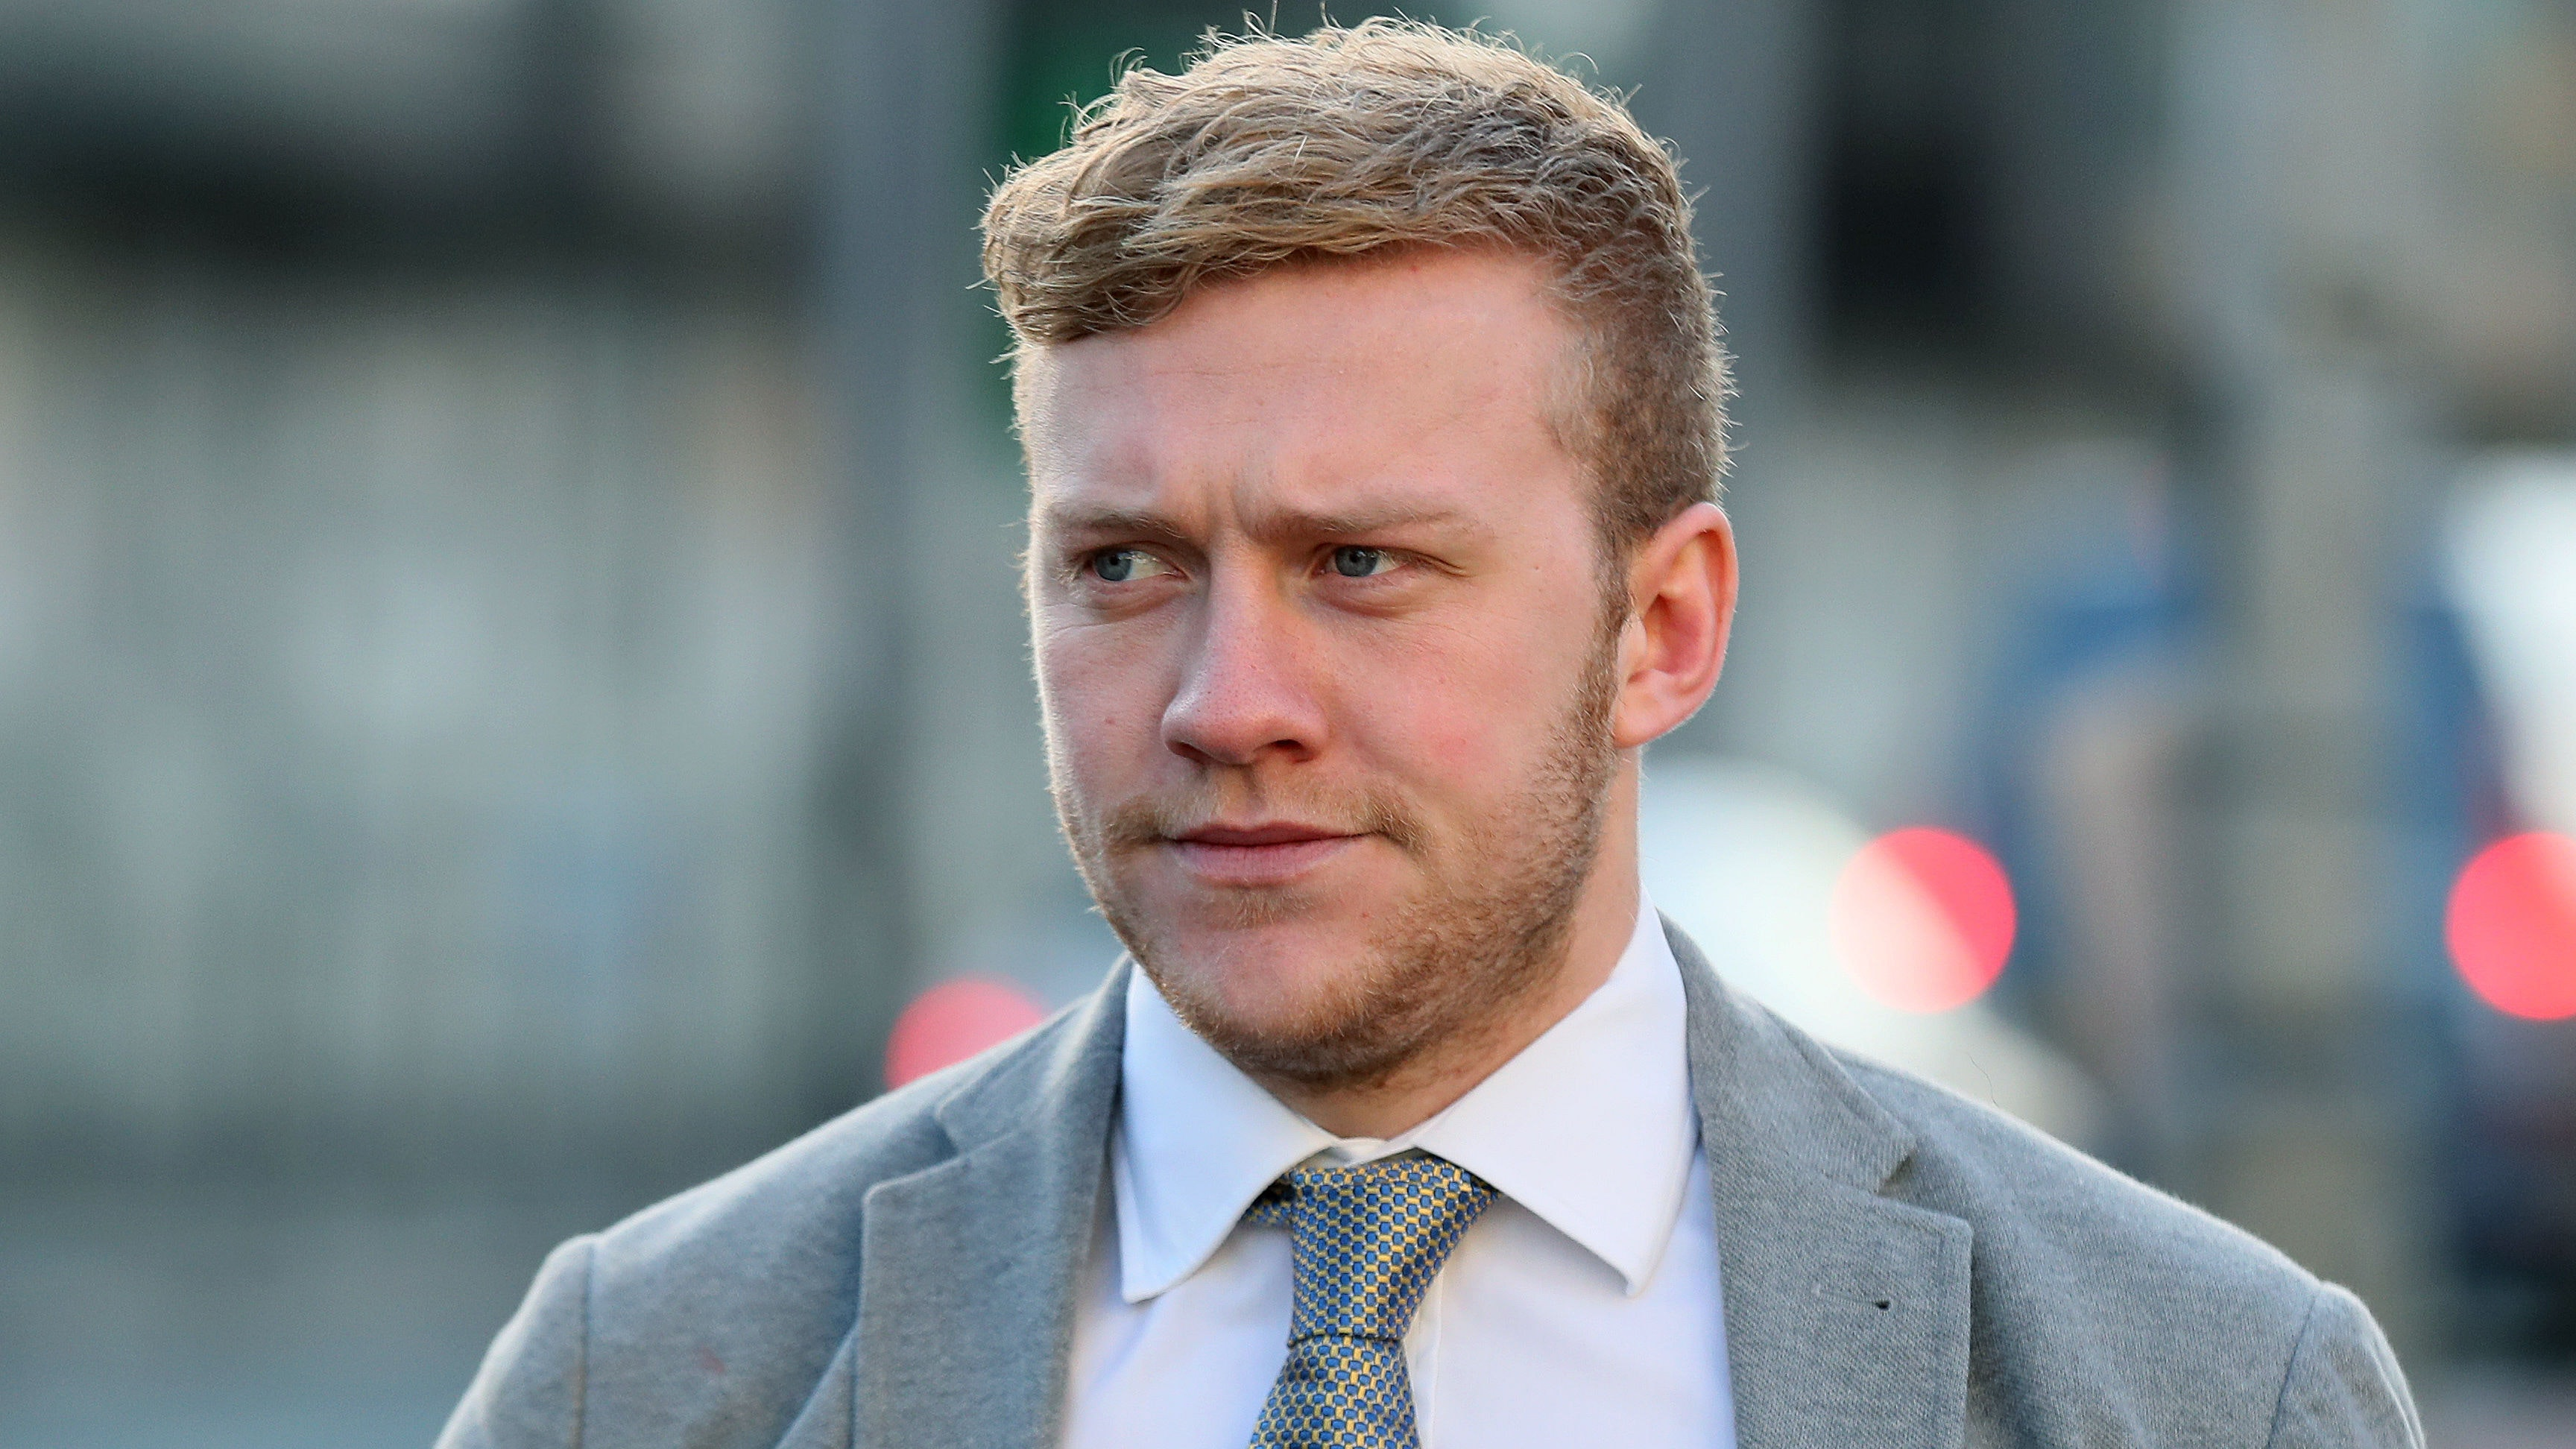 Rugby players' rape accuser denies lying to protect reputation